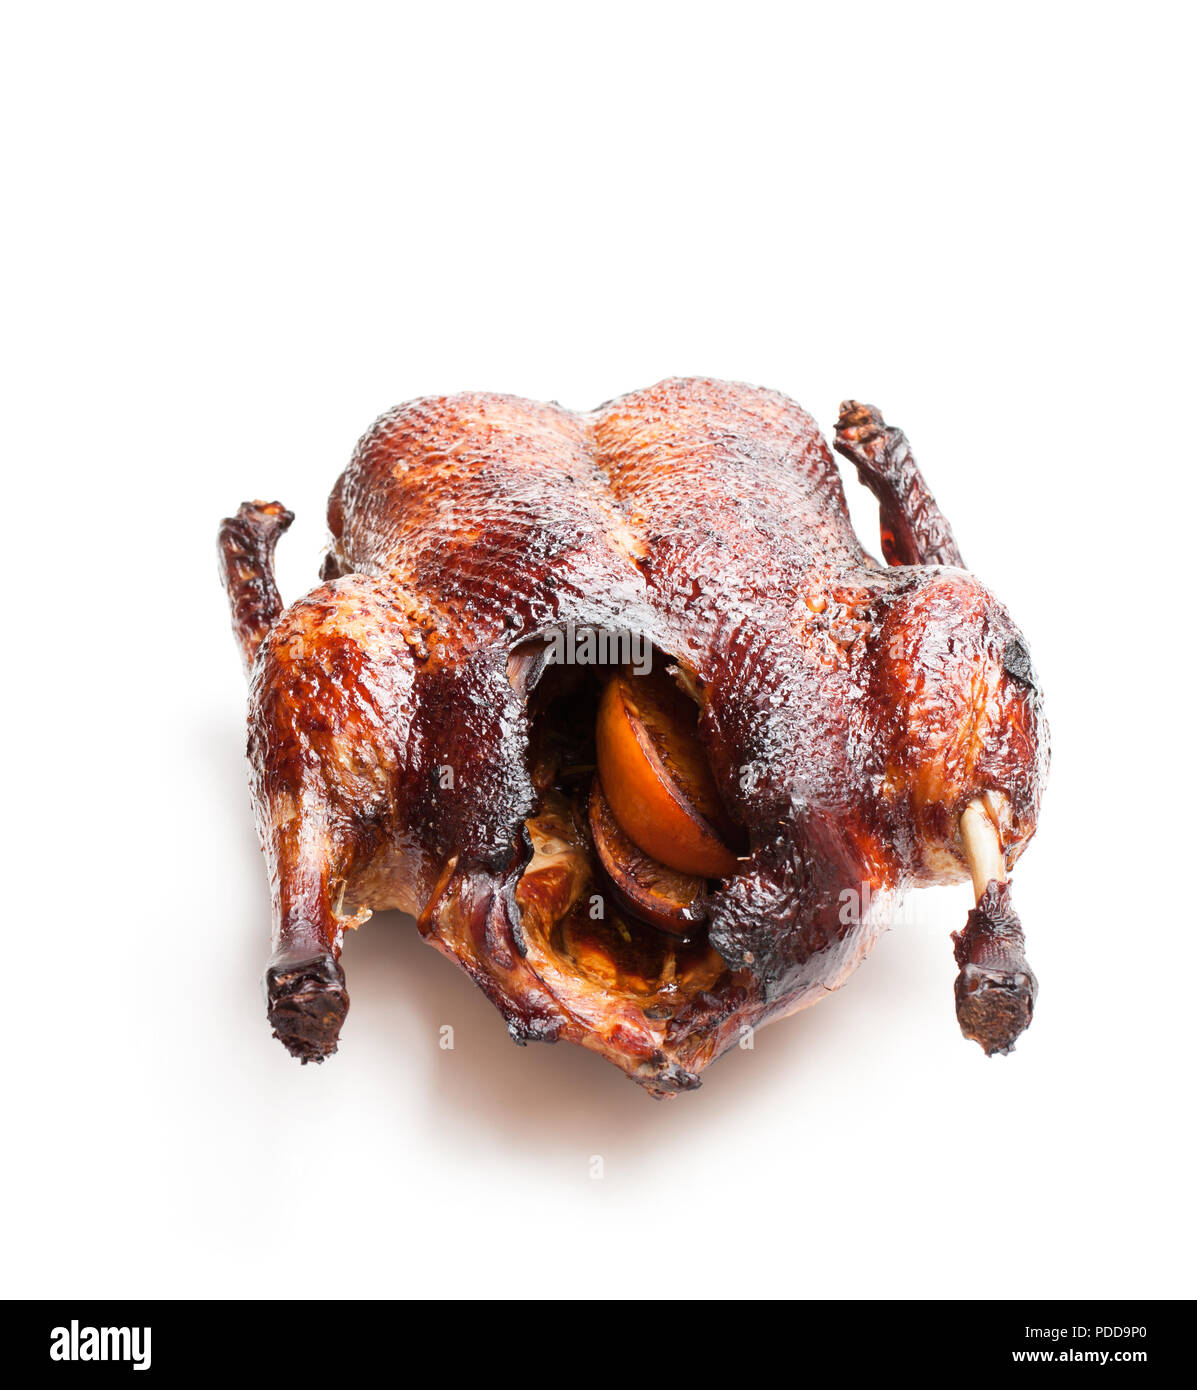 Roasted  duck stuffed with oranges isolated on white - Stock Image